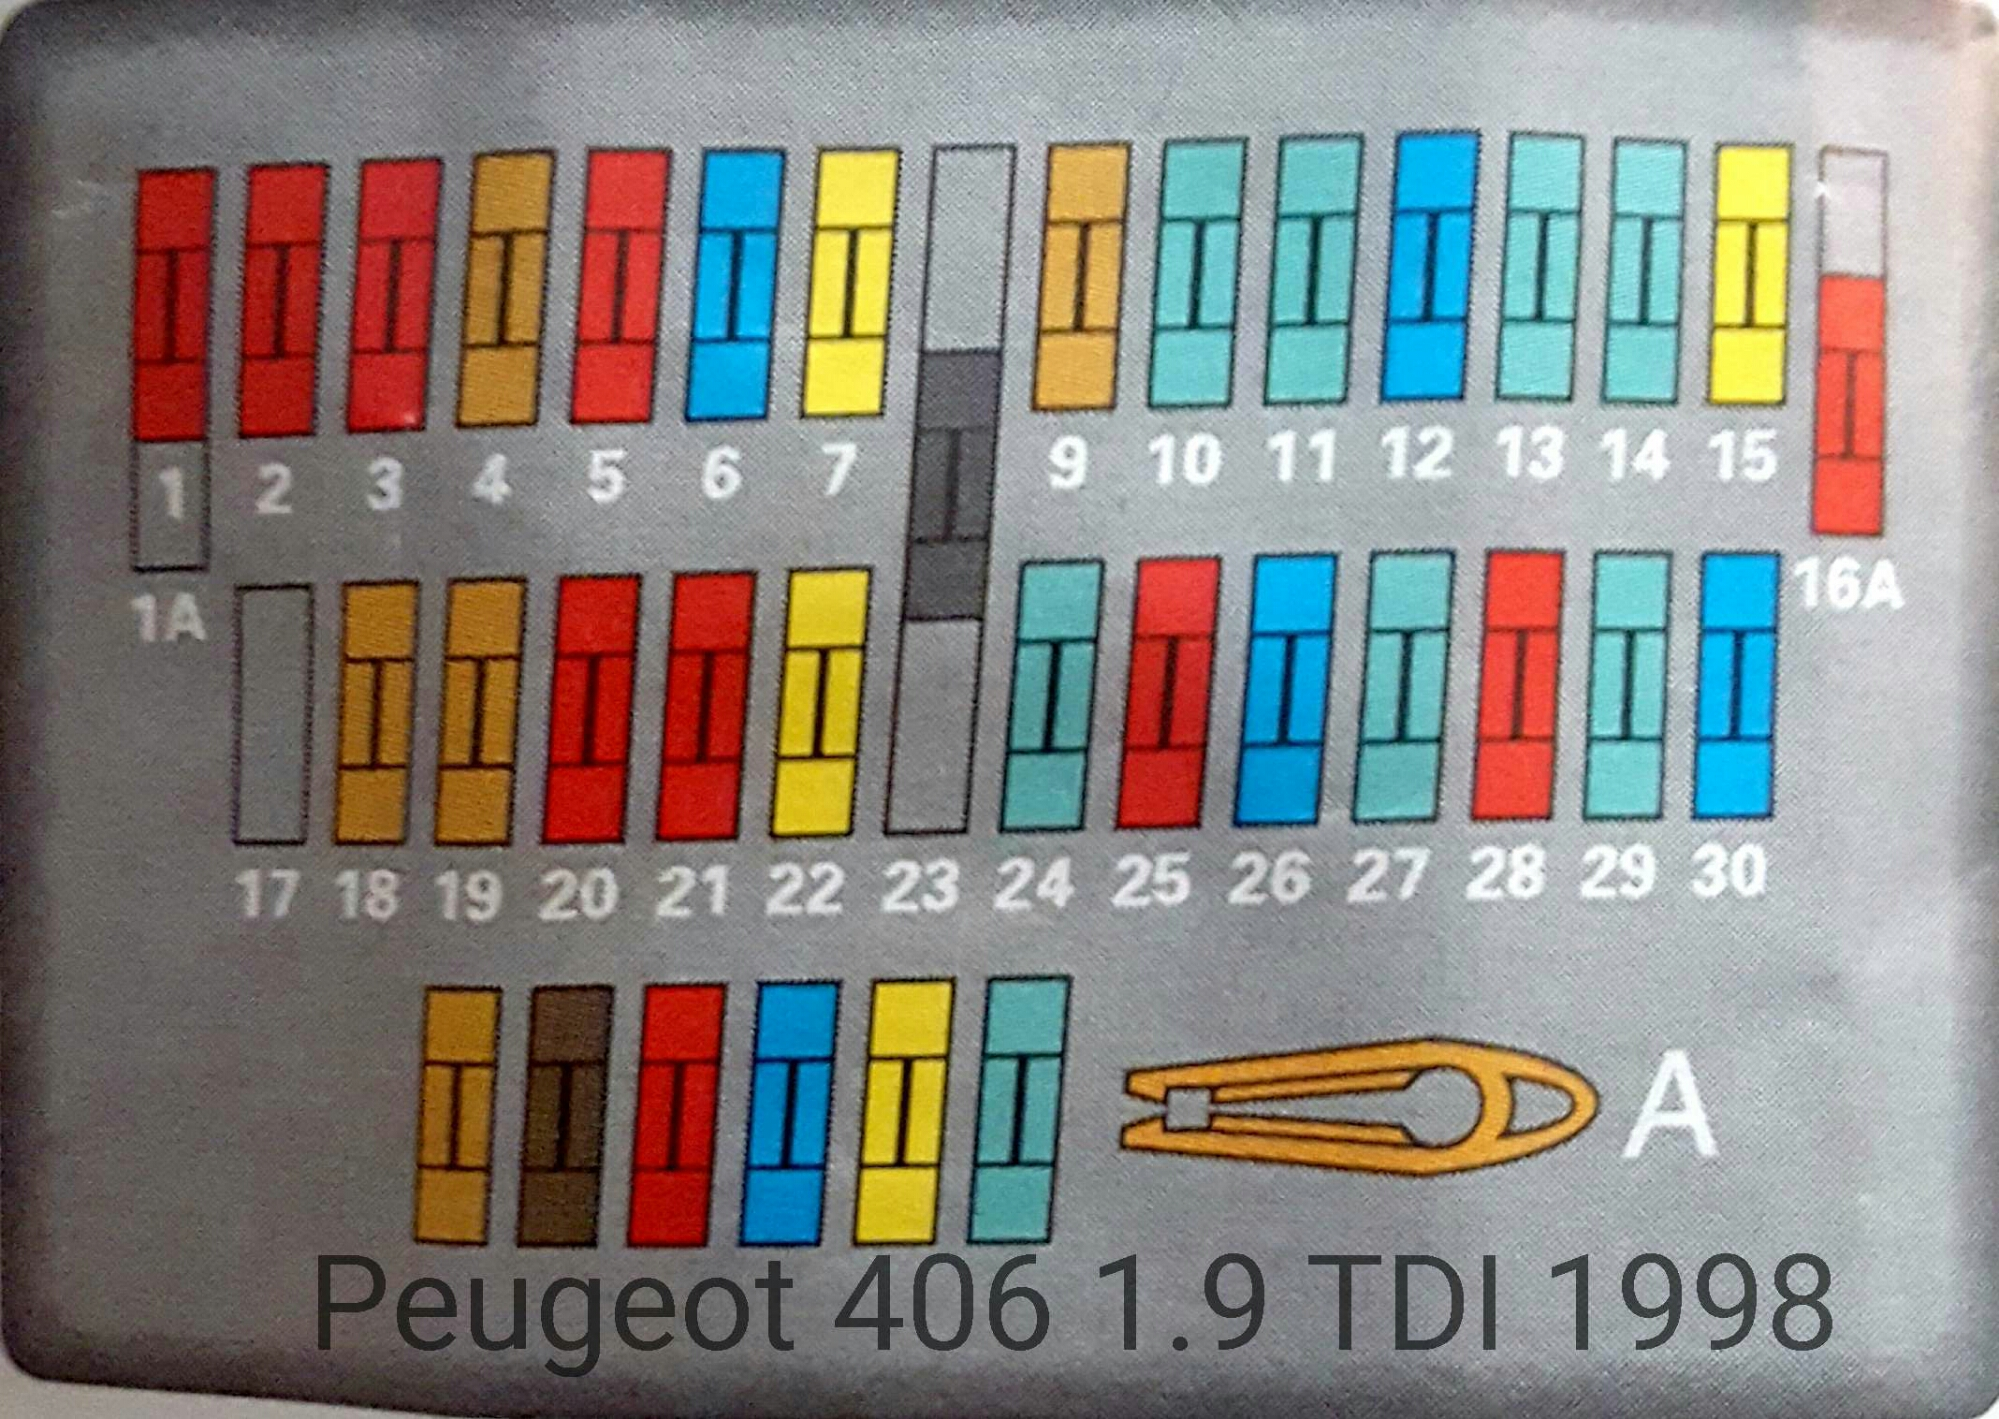 hight resolution of cartips peugeot 406 hand book peugeot 406 hand book tutorial rh 406cartips wordpress com peugeot 406 peugeot 406 fuse box